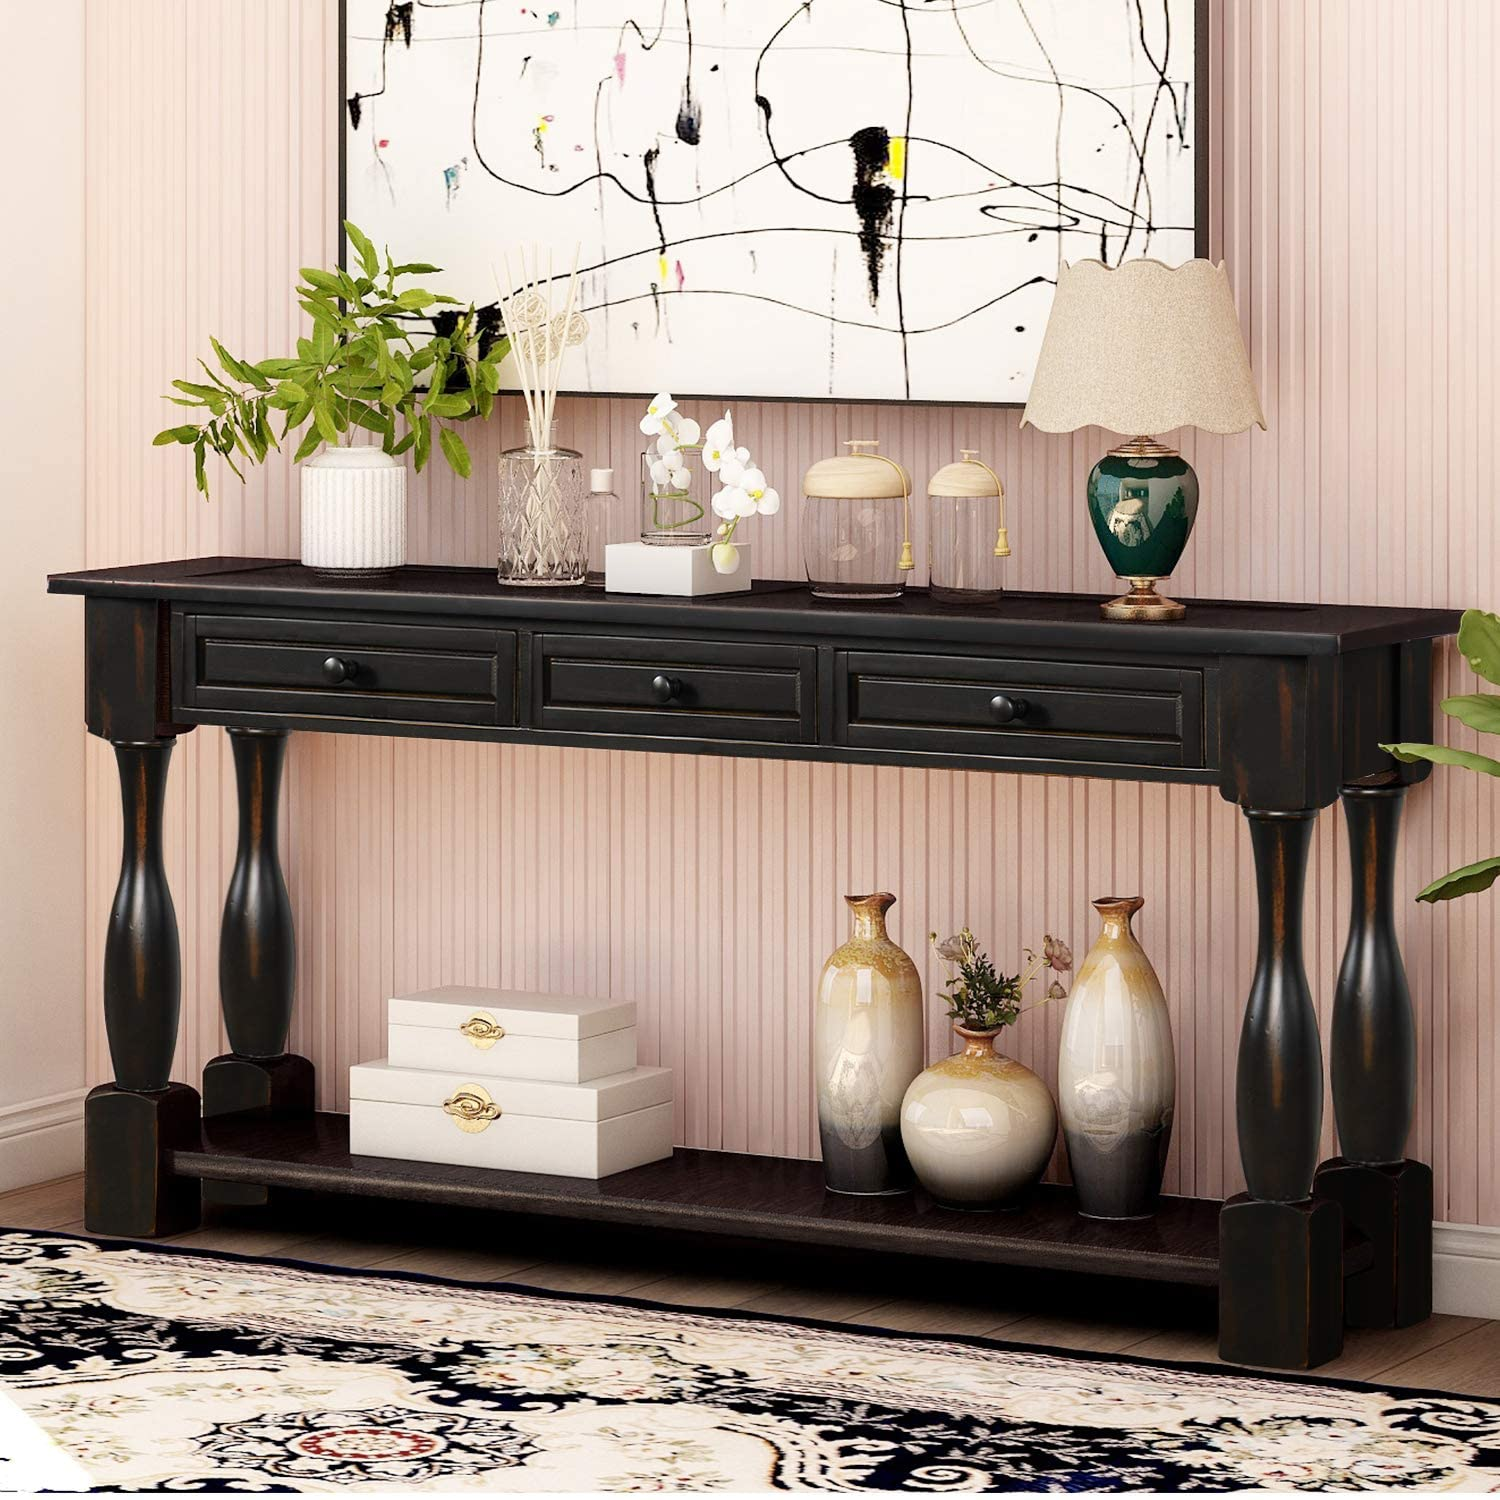 P Purlove Console Table For Entryway 64 Wood Sofa Table With Storage Drawers And Bottom Shelf For Hallway Living Room Antique Black Kitchen Dining